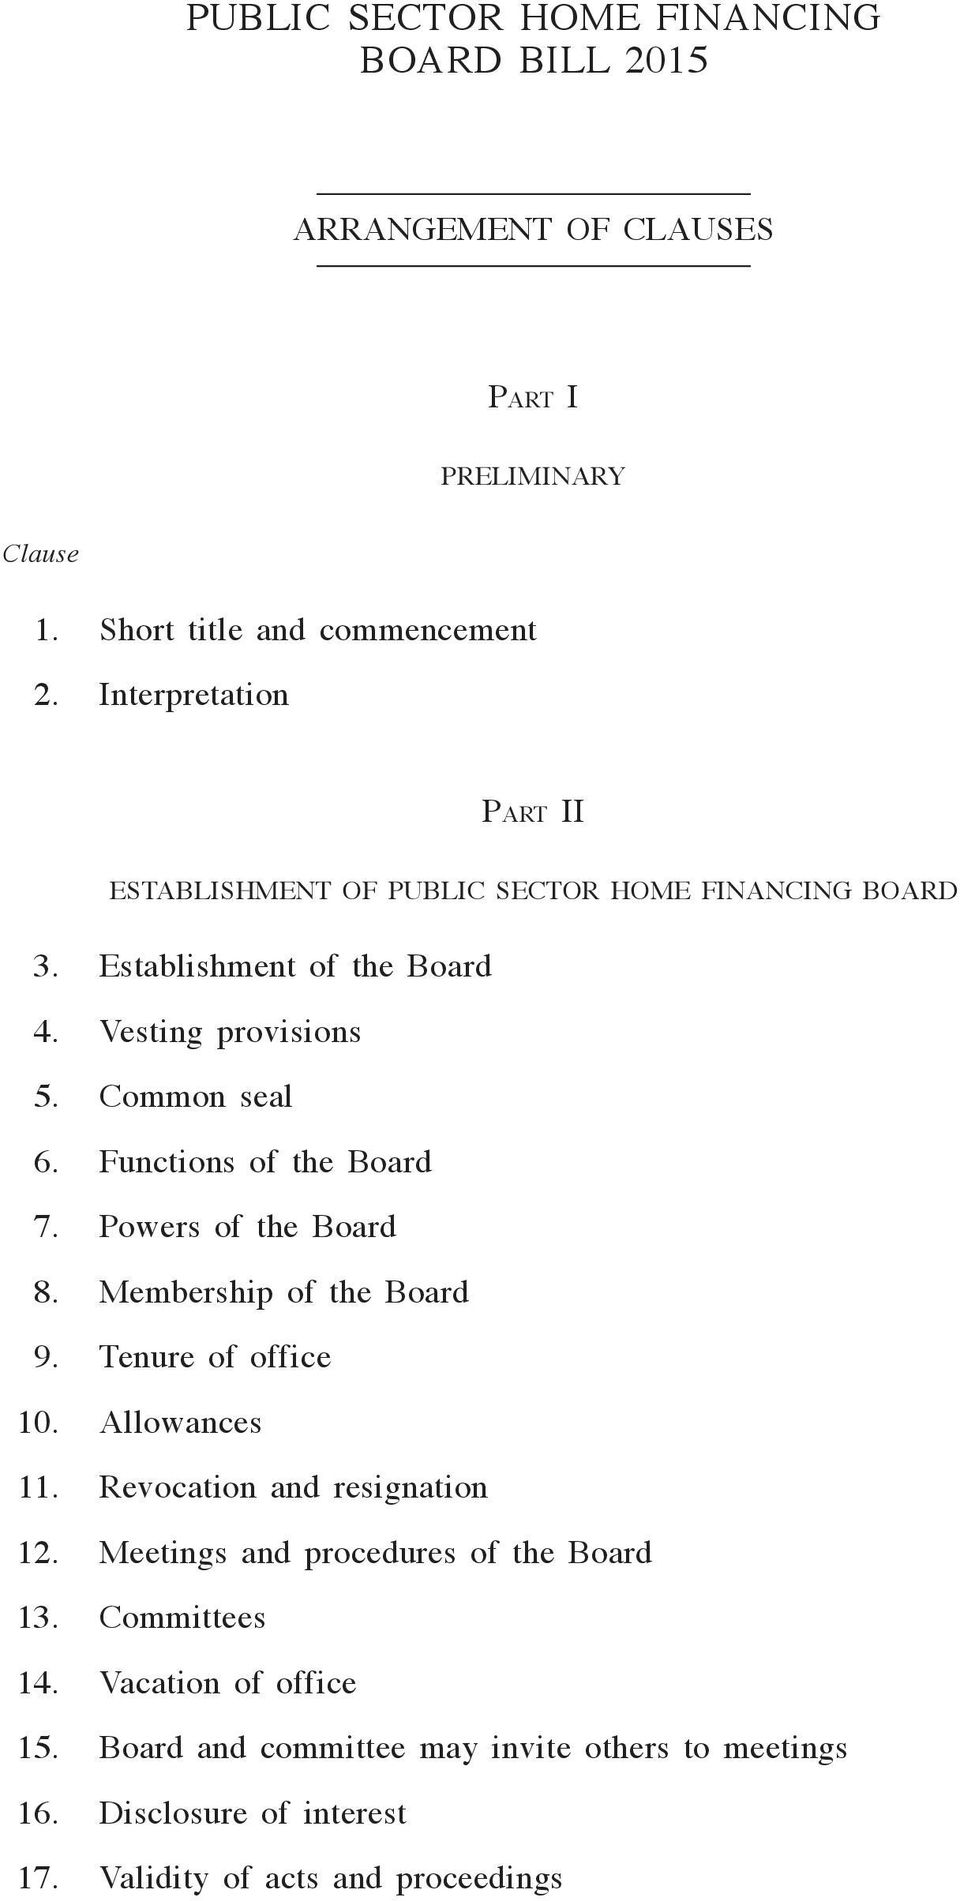 Common seal 6. Functions of the Board 7. Powers of the Board 8. Membership of the Board 9. Tenure of office 10. Allowances 11. Revocation and resignation 12.